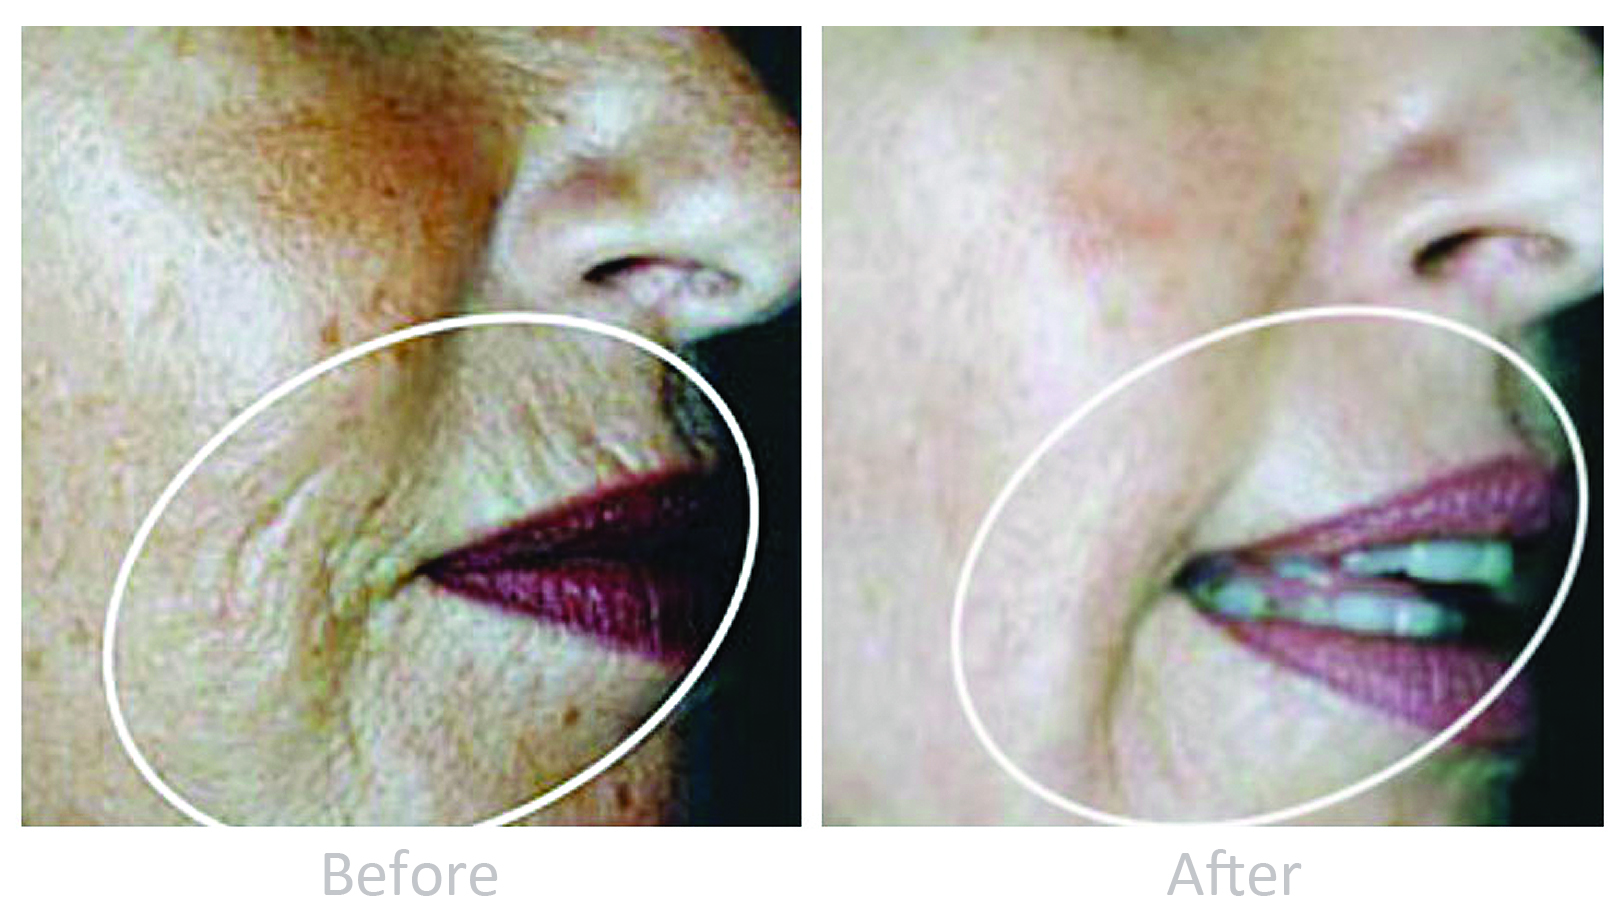 Dermaroller treatment for collagen growth: